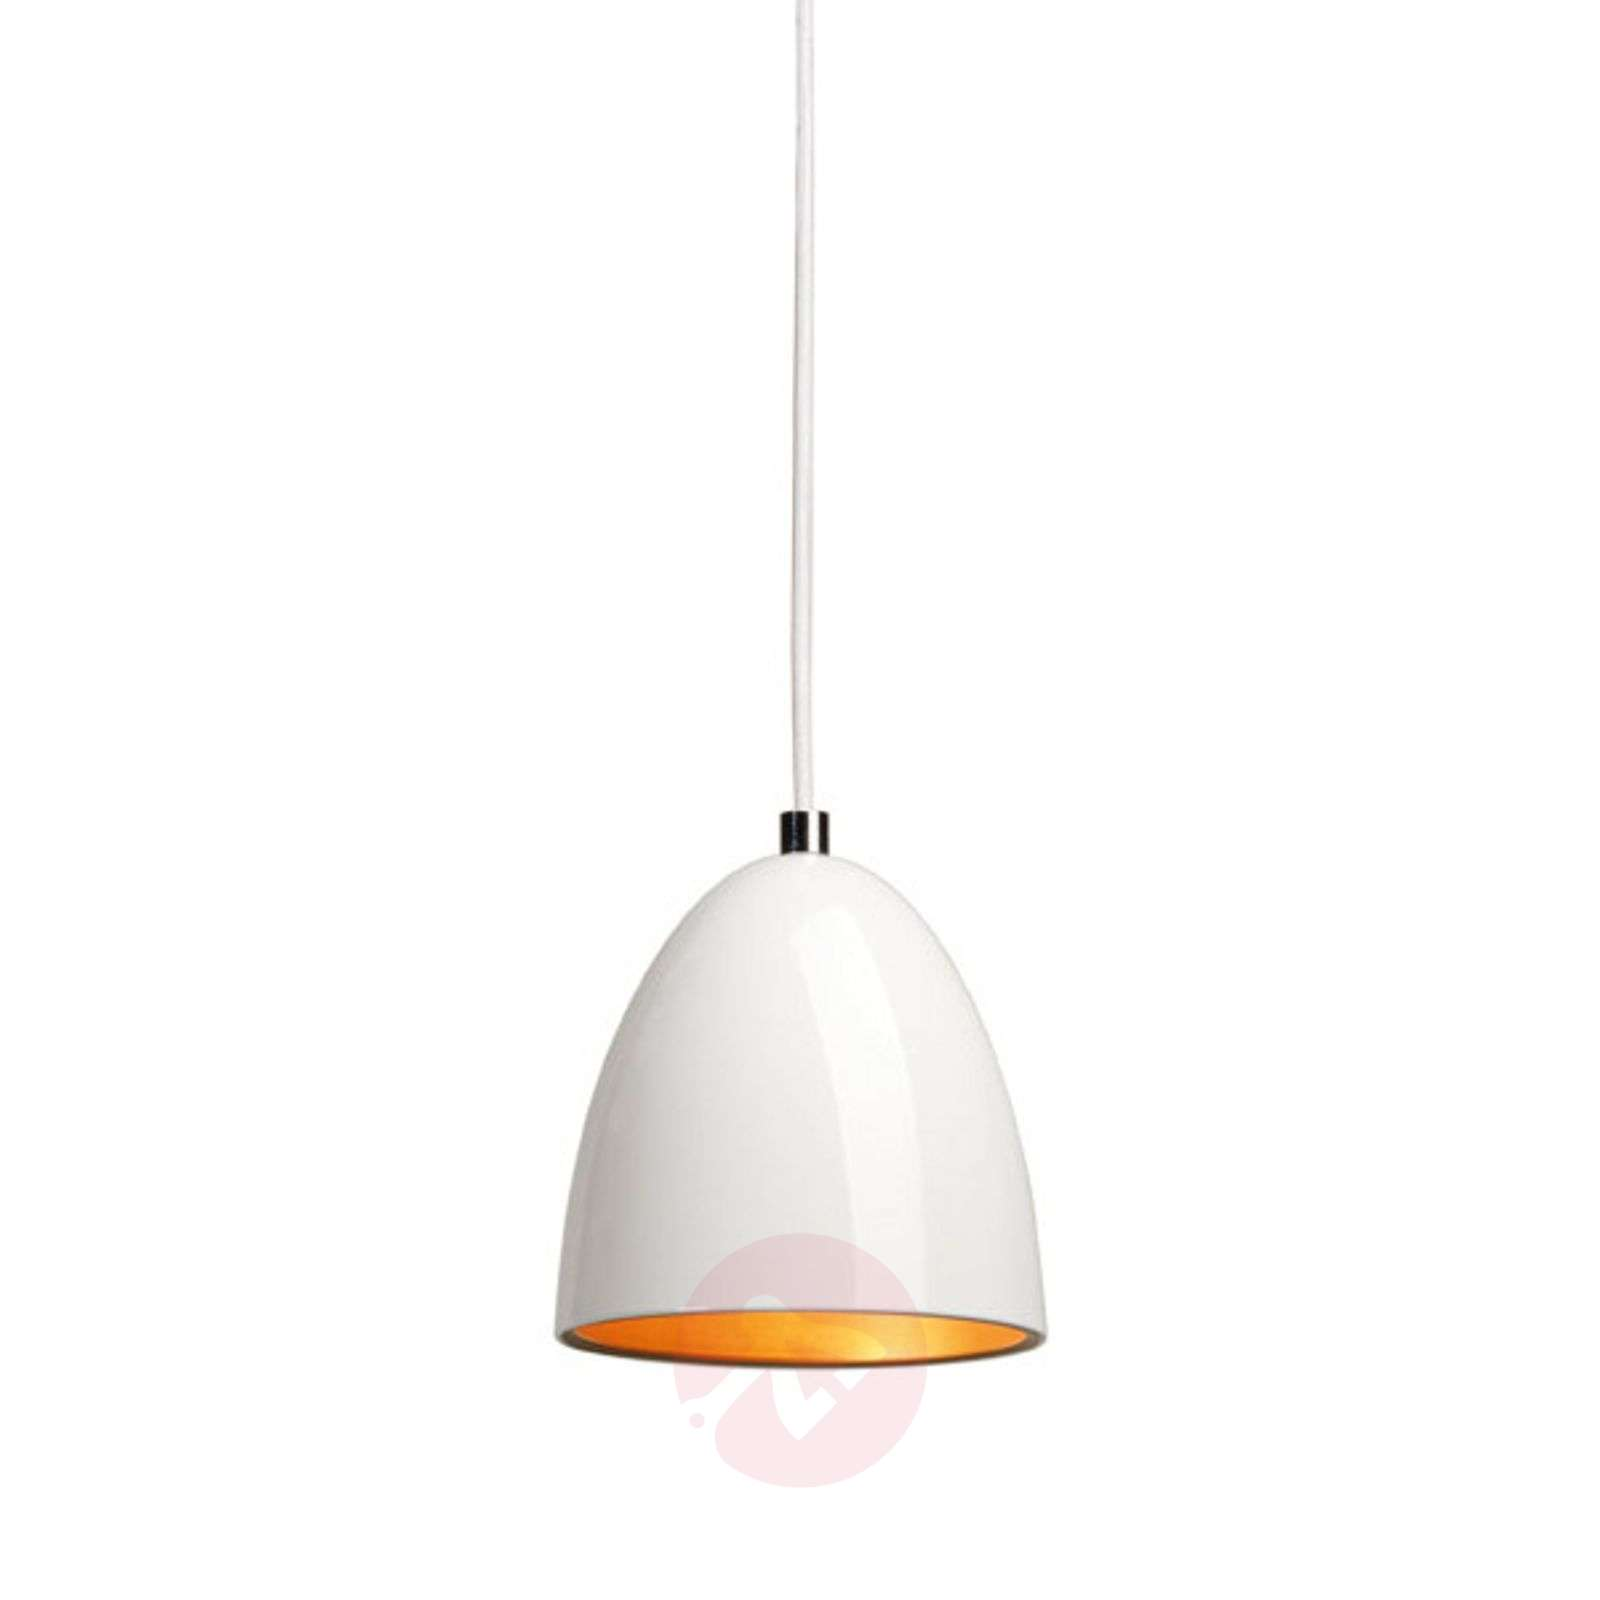 wh products anello spun cone rejuvenation catalog pendant